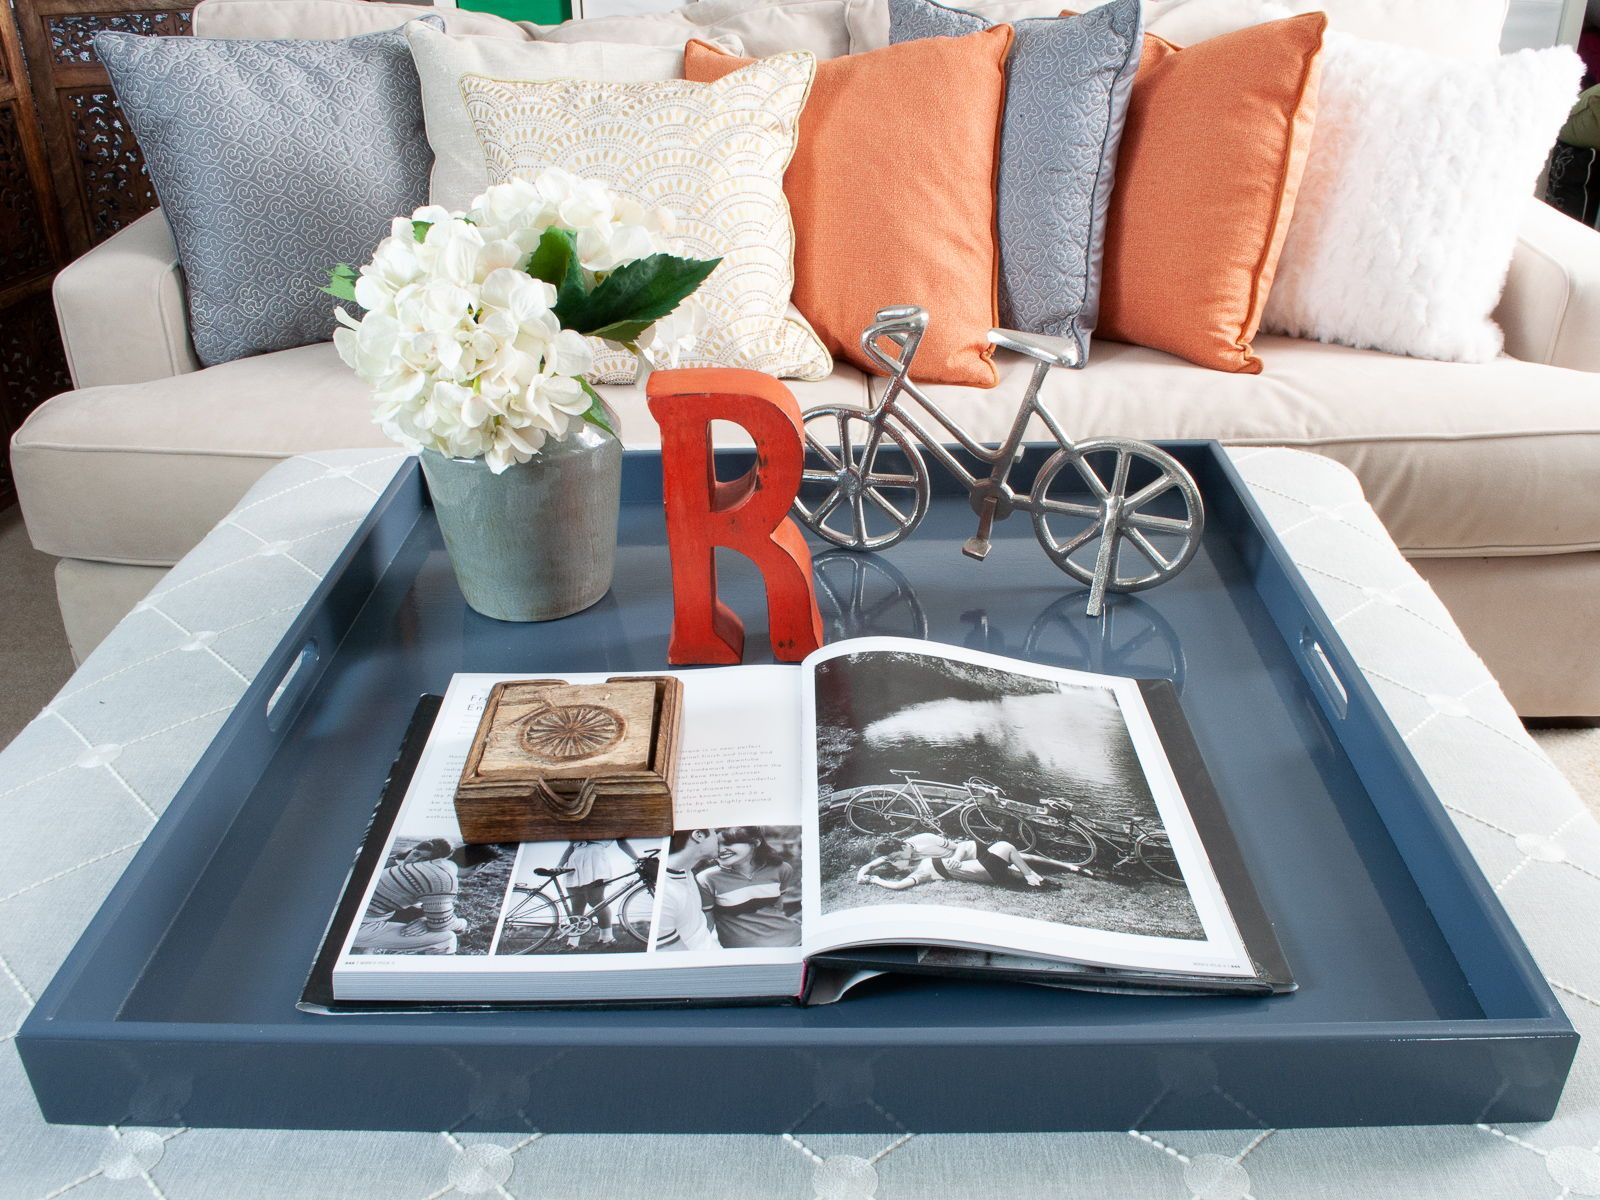 Stunning In Slate And The Perfect Ottoman Tray Or Coffee Table Tray For Displaying Your Favorite Things We Are Love It U With Images Ottoman Tray Decor Large Ottoman Tray